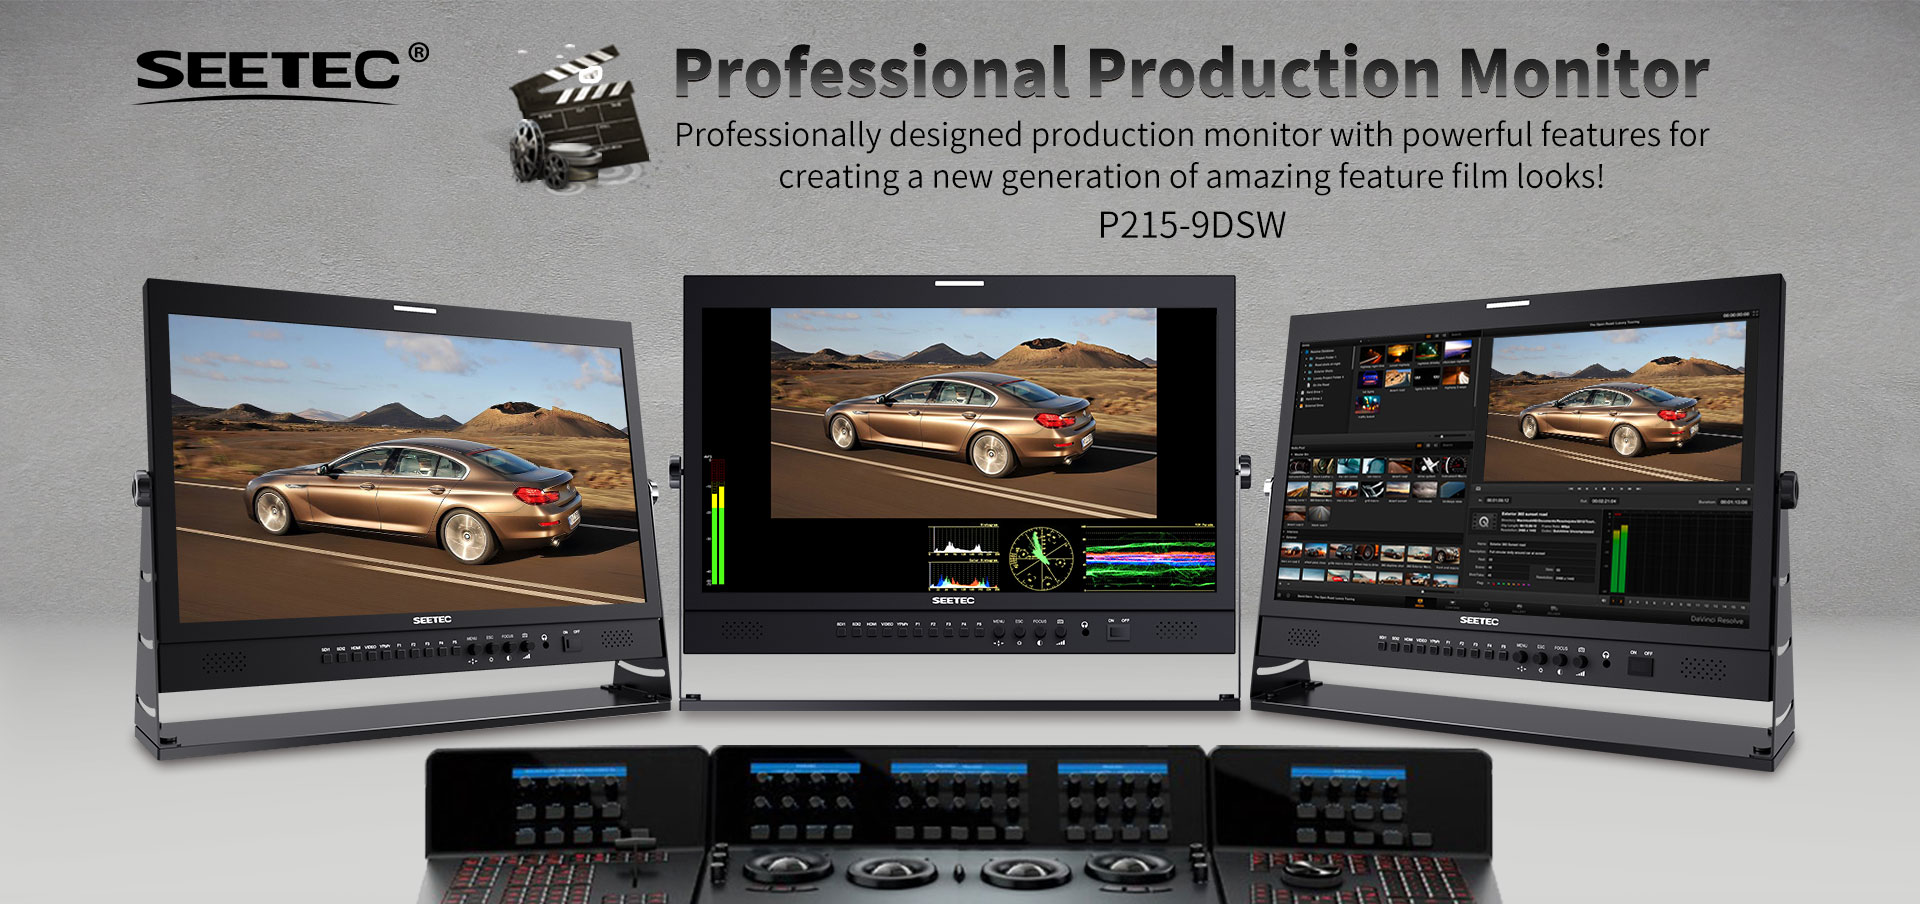 professional production monitor P215-9DSW